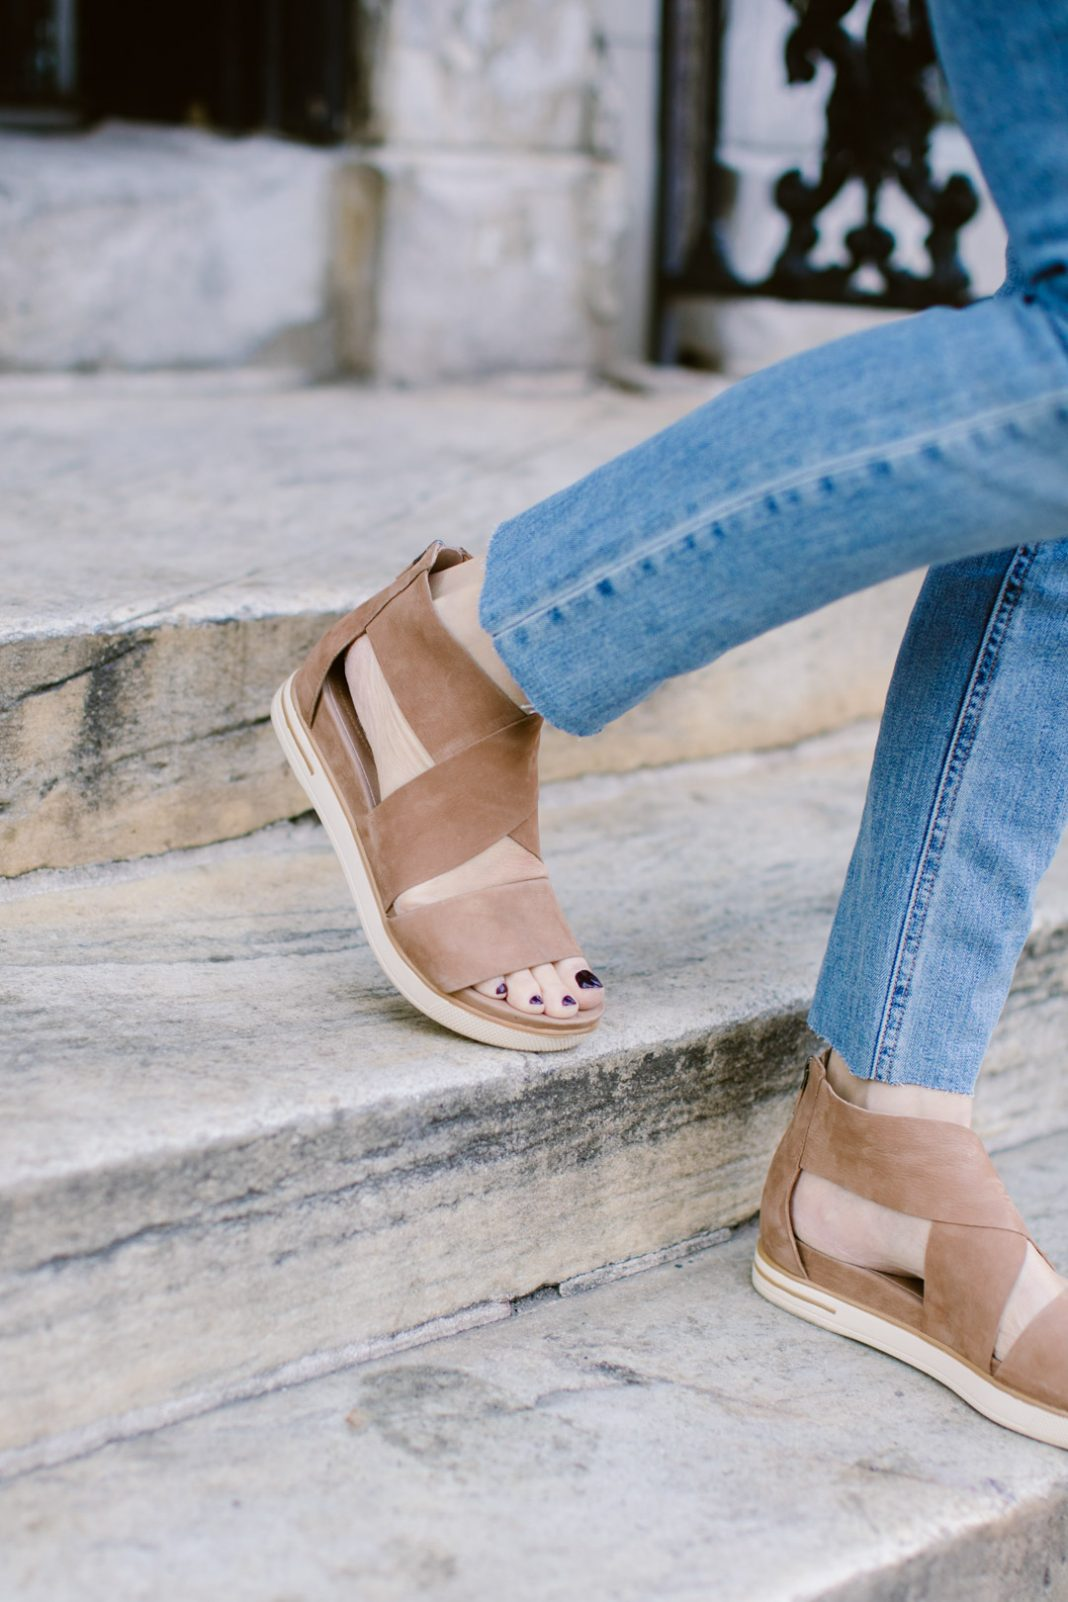 Sephora Spring Savings, classics at Shopbop, J.Crew cashmere, EILEEN FISHER sandals — fashion deals are SO good. Madewell, Nordstrom & Anthro are on fire, too.